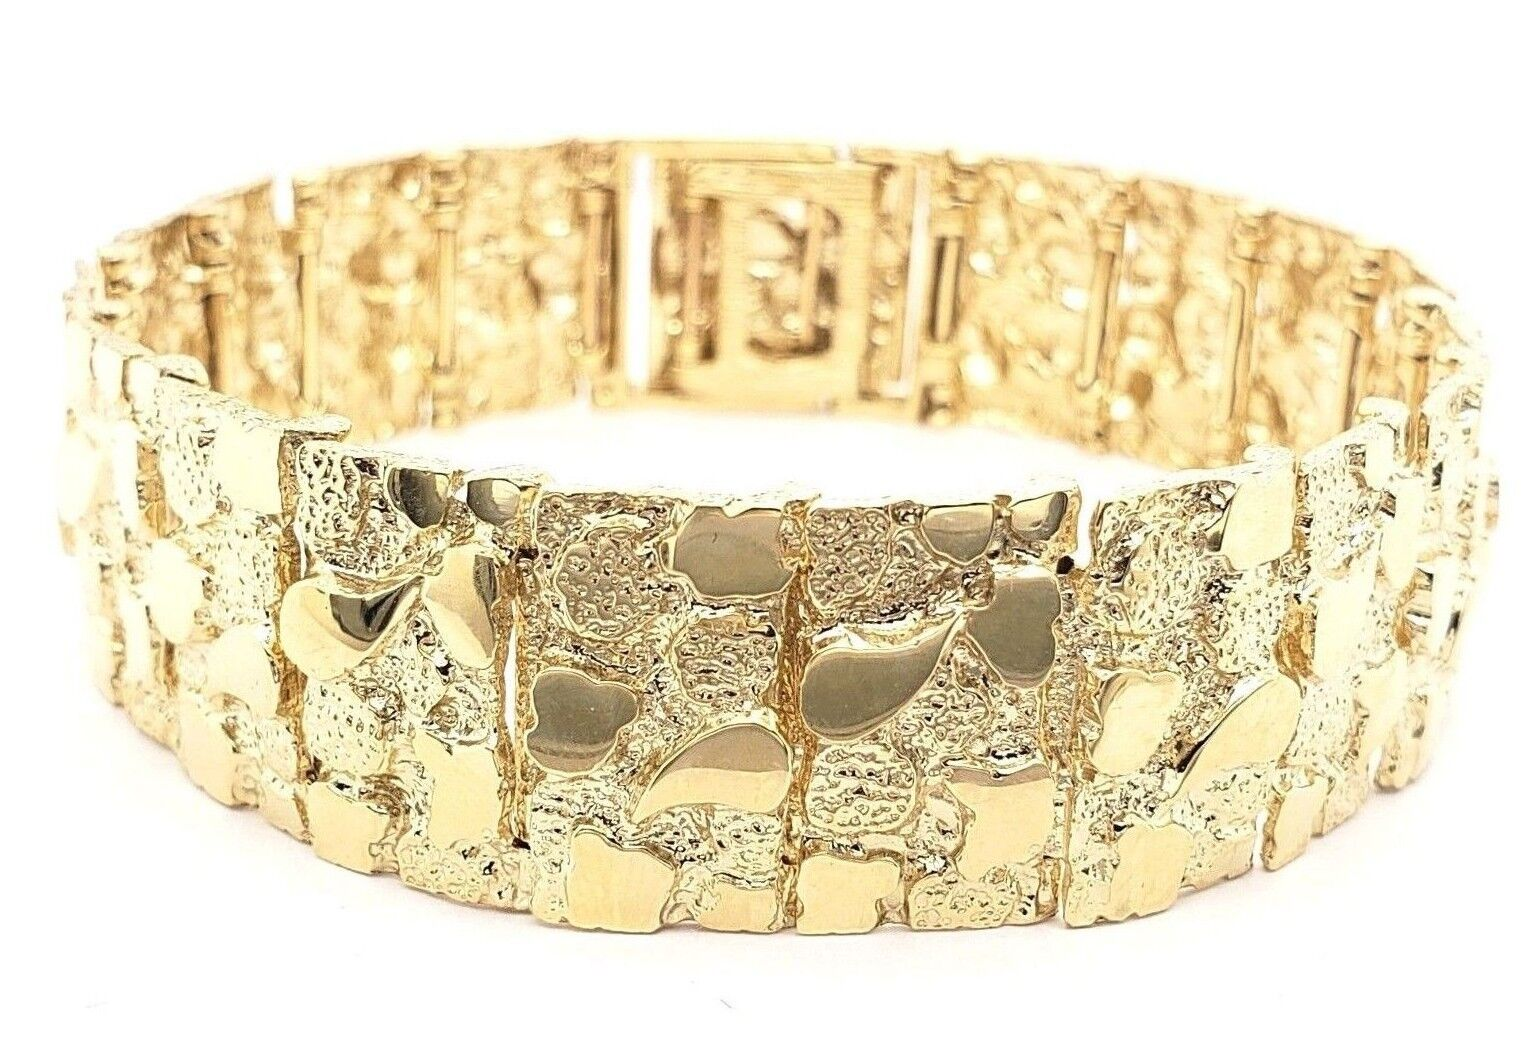 9ac888583e3aa Details about Men's 14k Yellow Gold Solid Nugget Bracelet Link 7.5